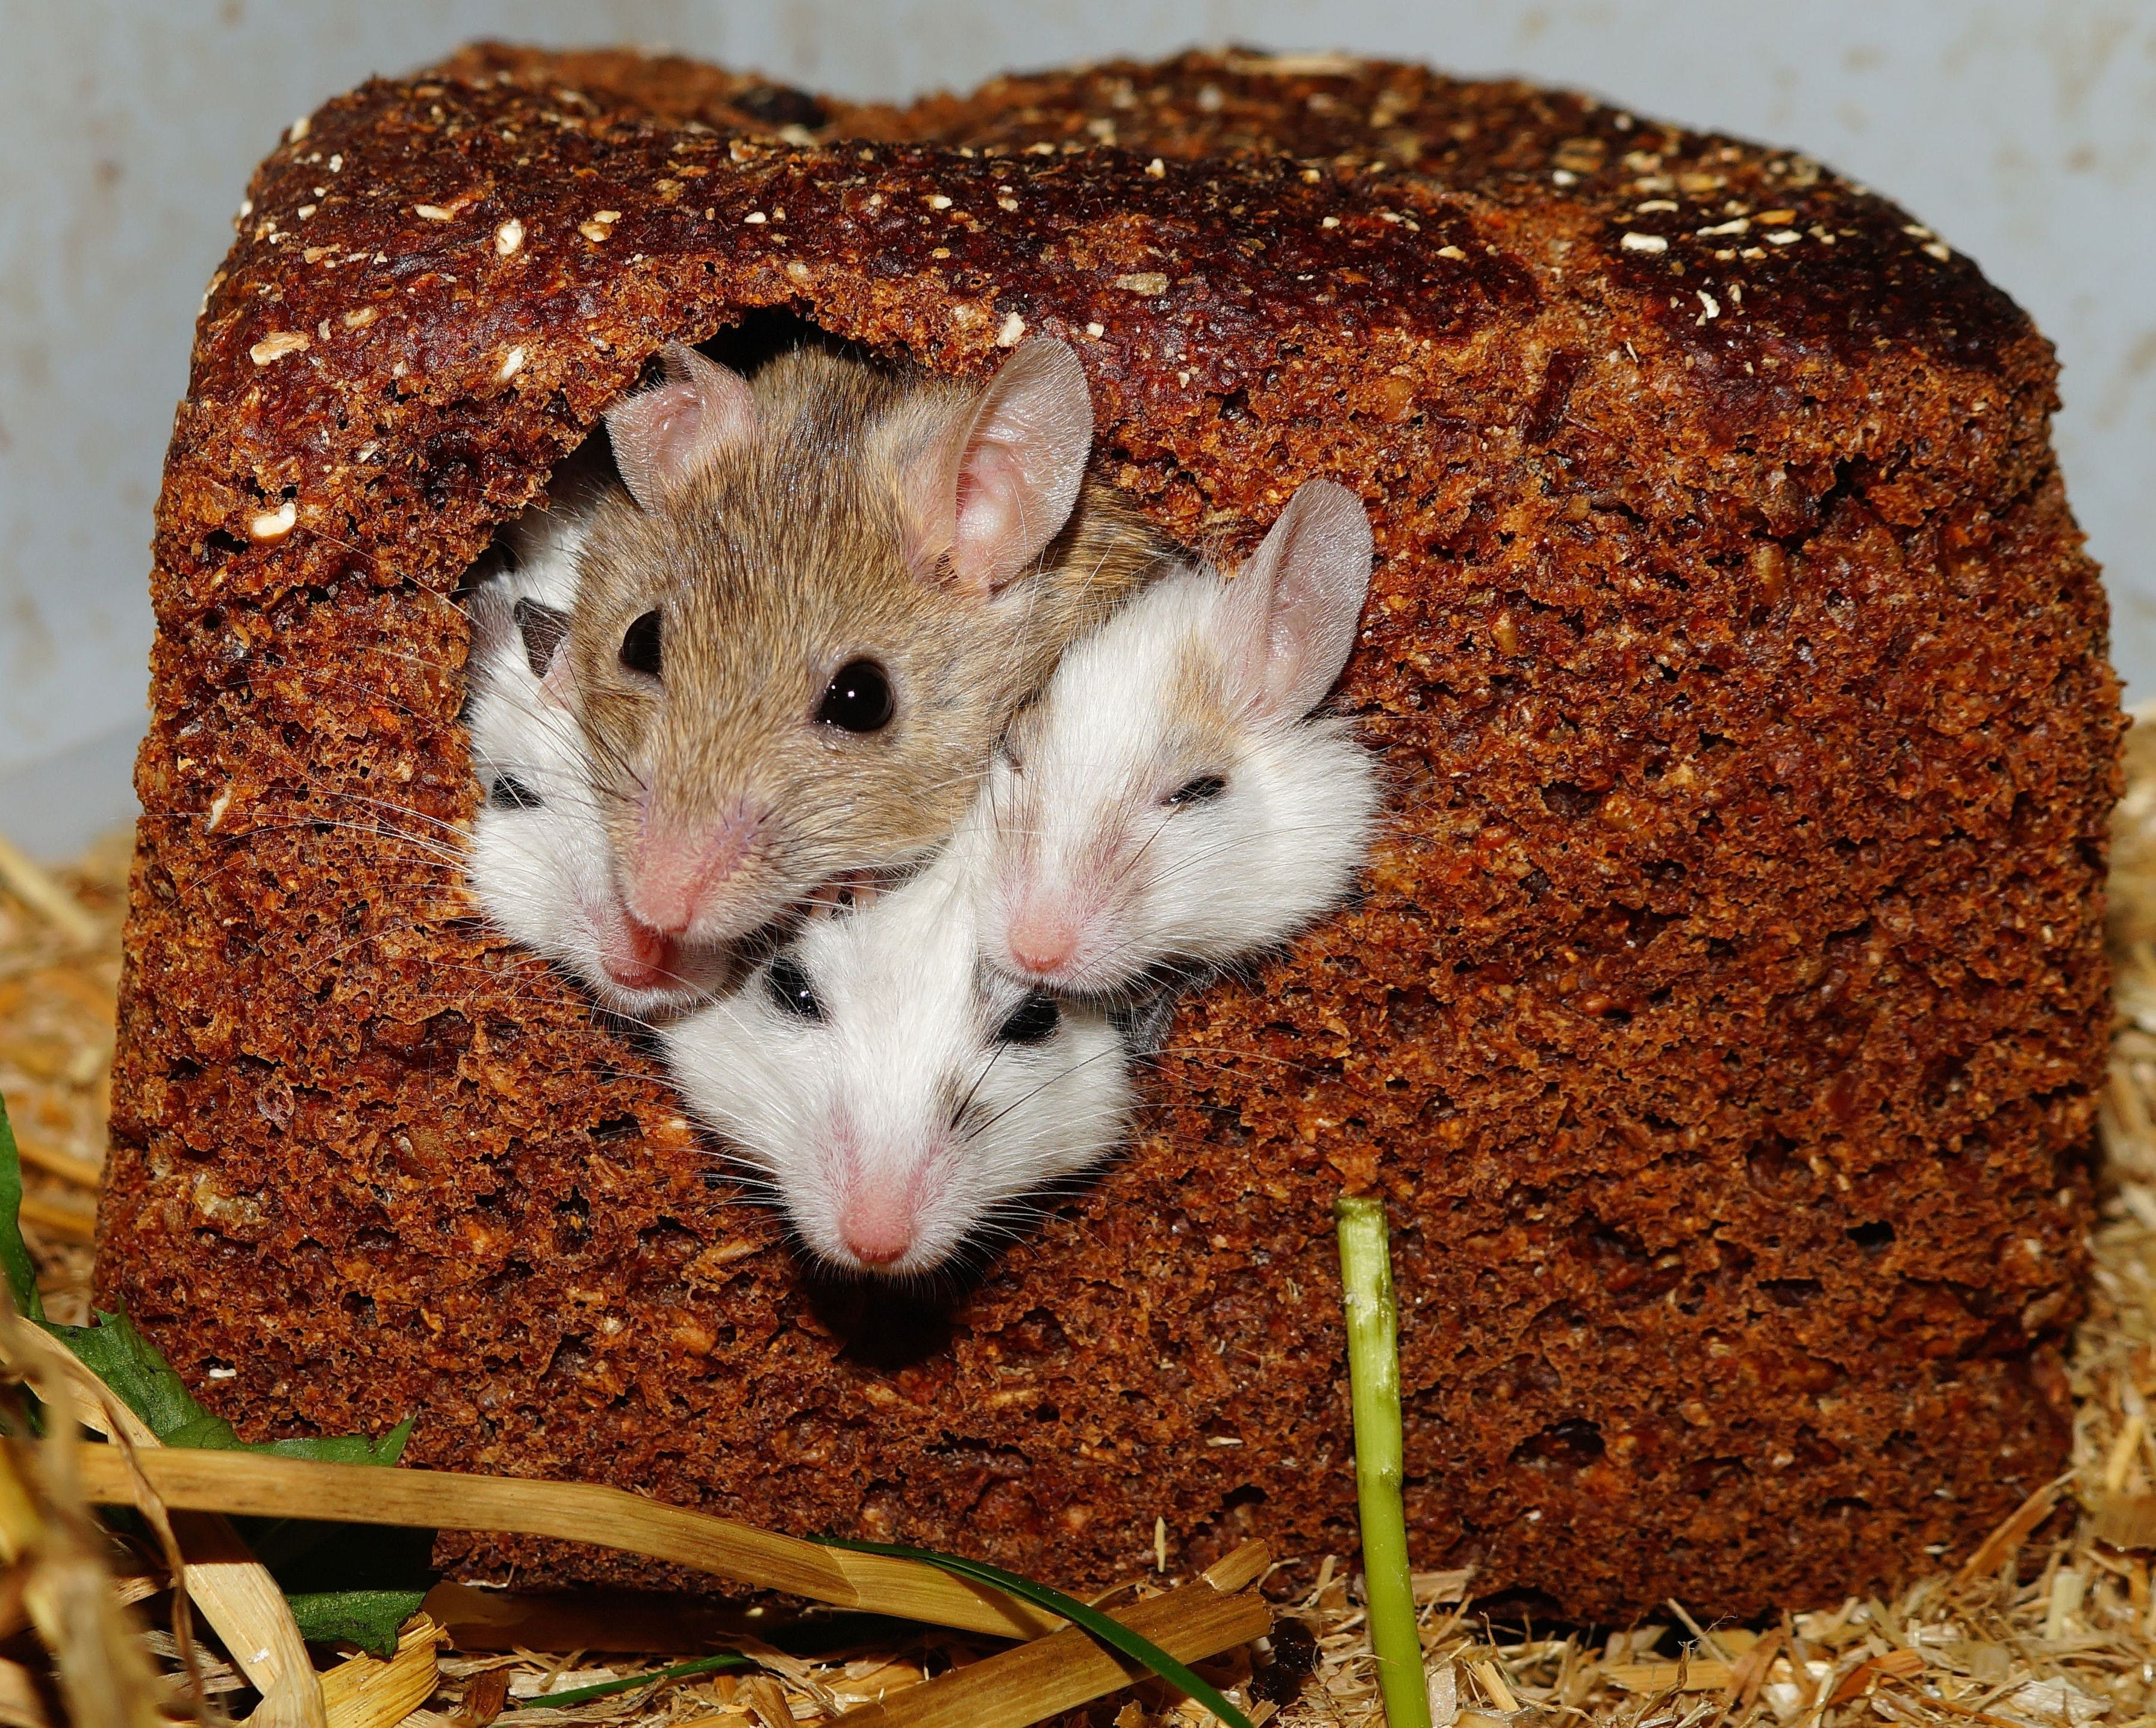 Four Small White Brown Mice Poking Their Heads Out from a Bread Loaf